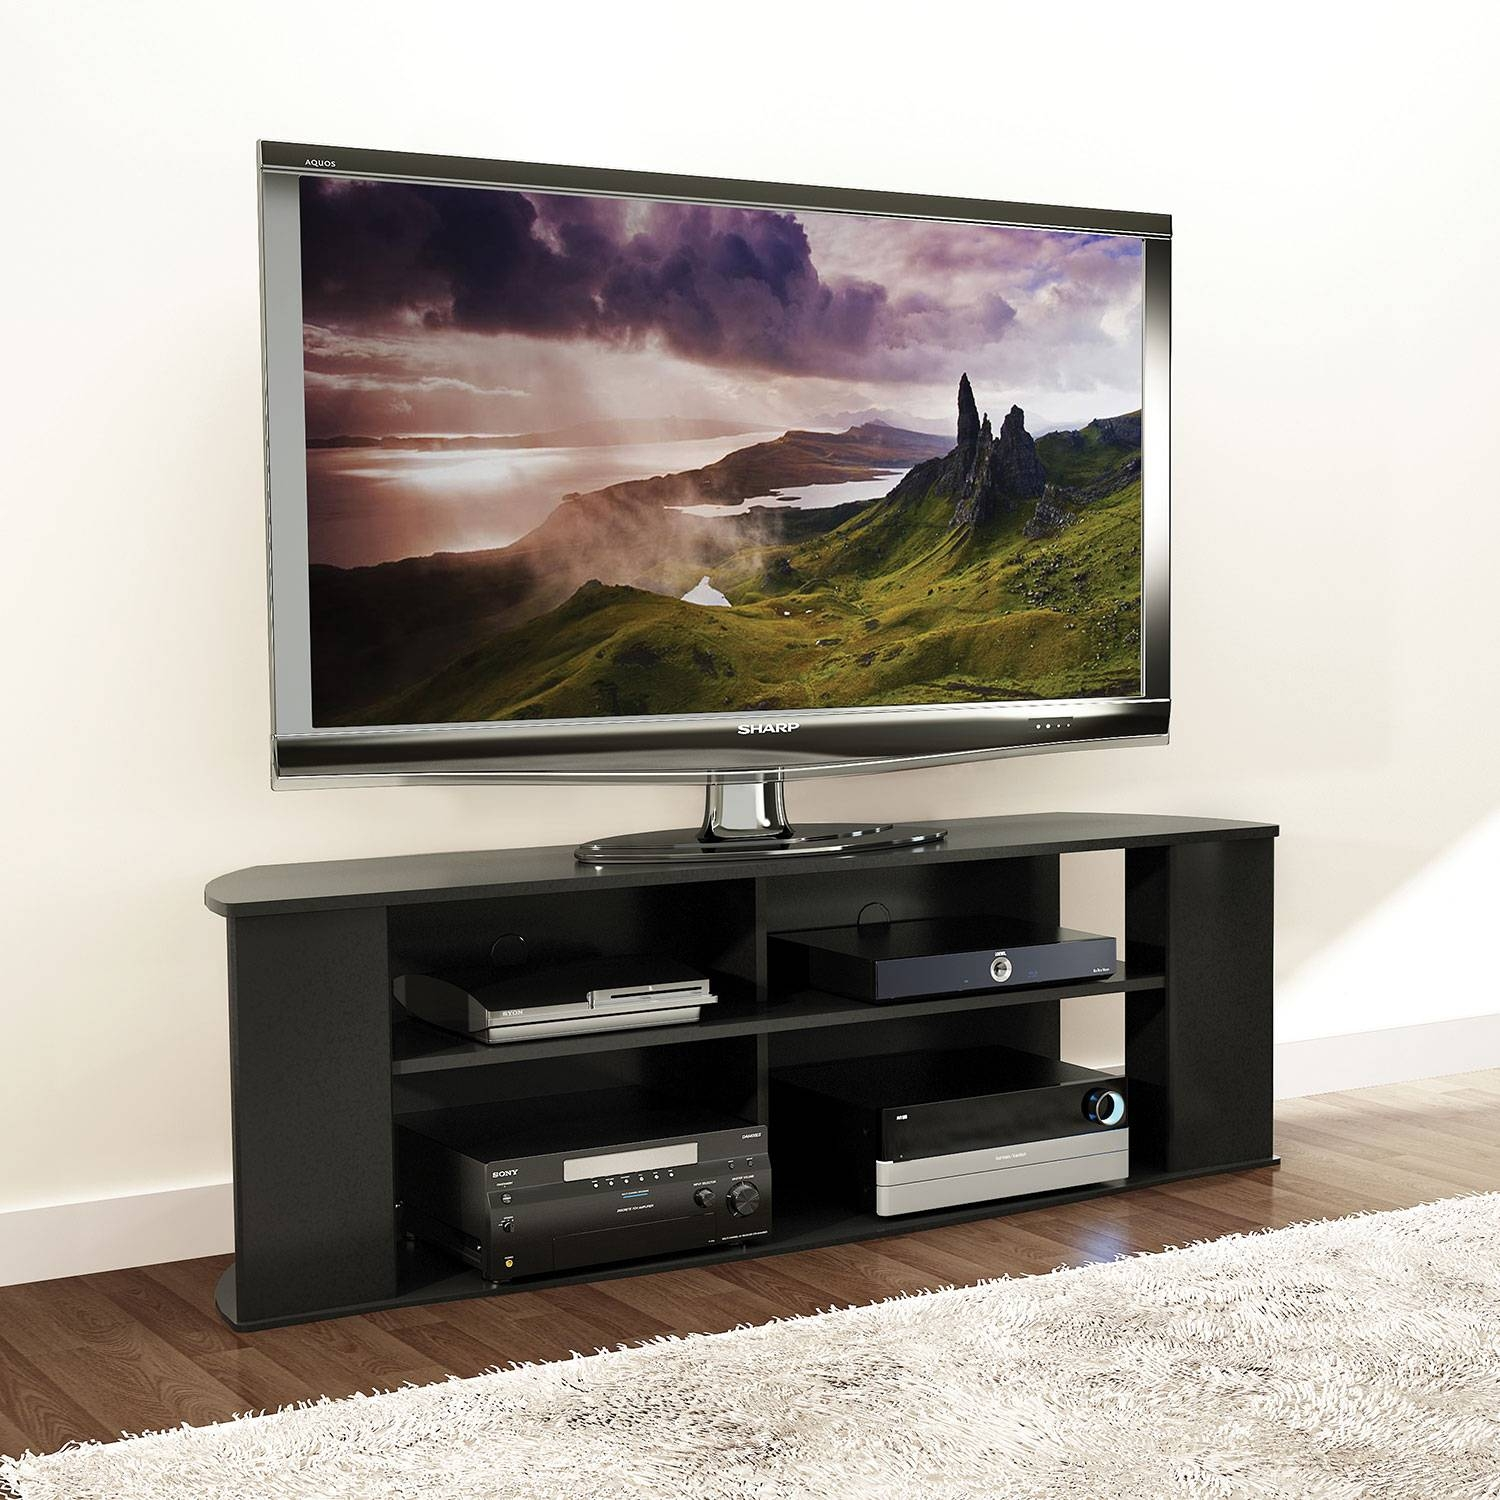 "Prefac Essentials 60"" Tv Stand - Black : Tv Stands - Best Buy Canada with regard to Modern Tv Stands for 60 Inch Tvs (Image 10 of 15)"